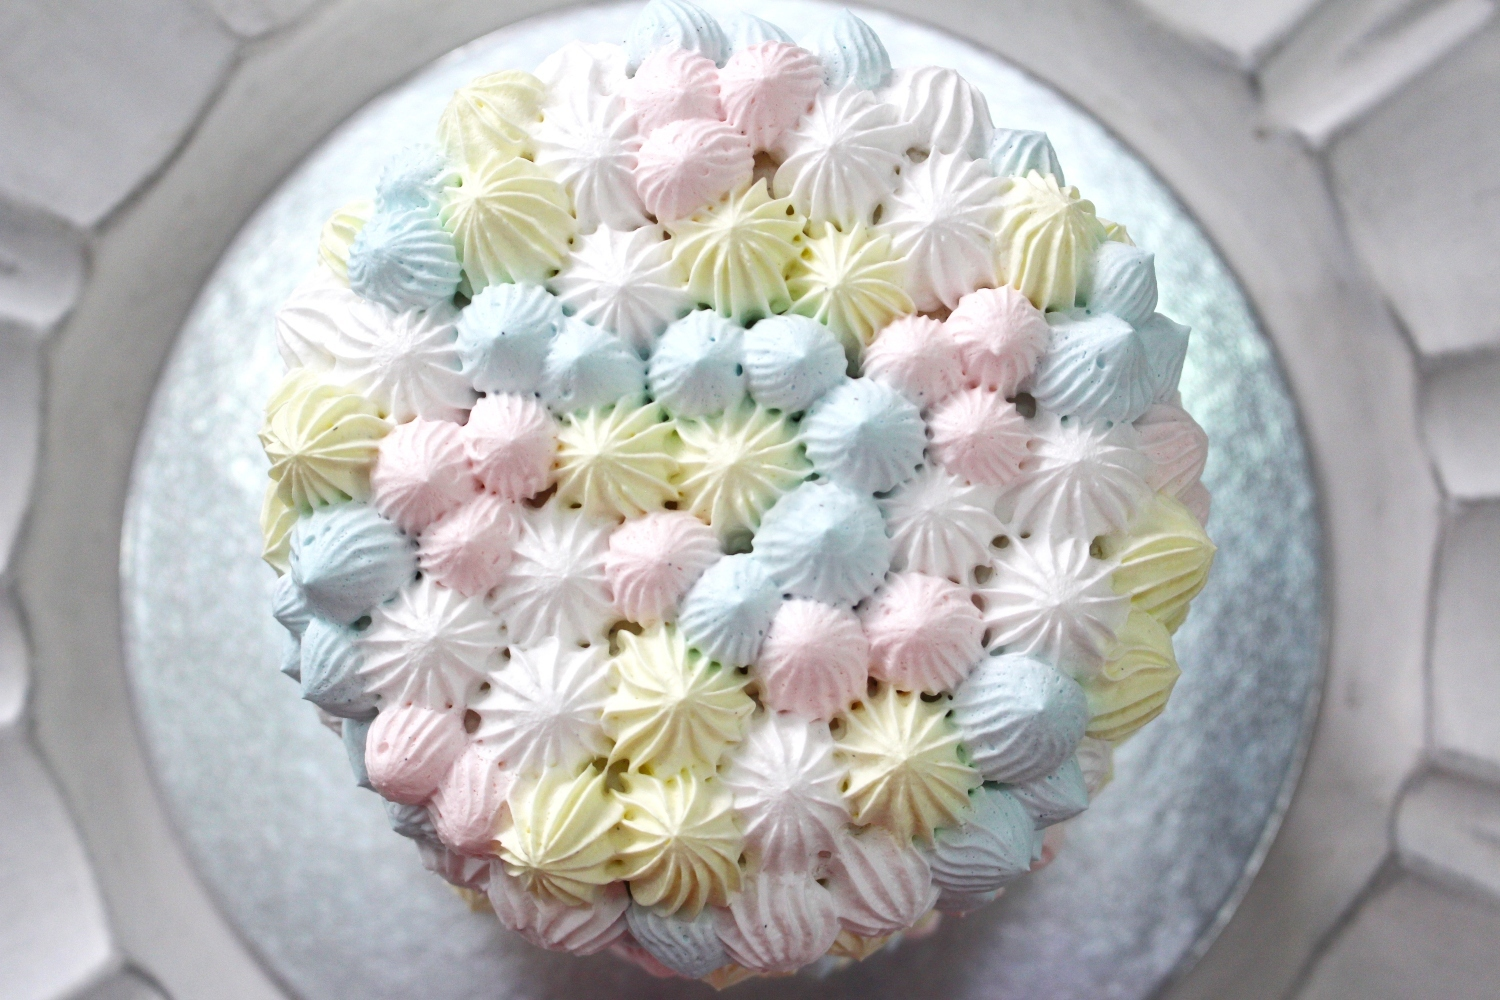 The Cakery Pastel Dream cake